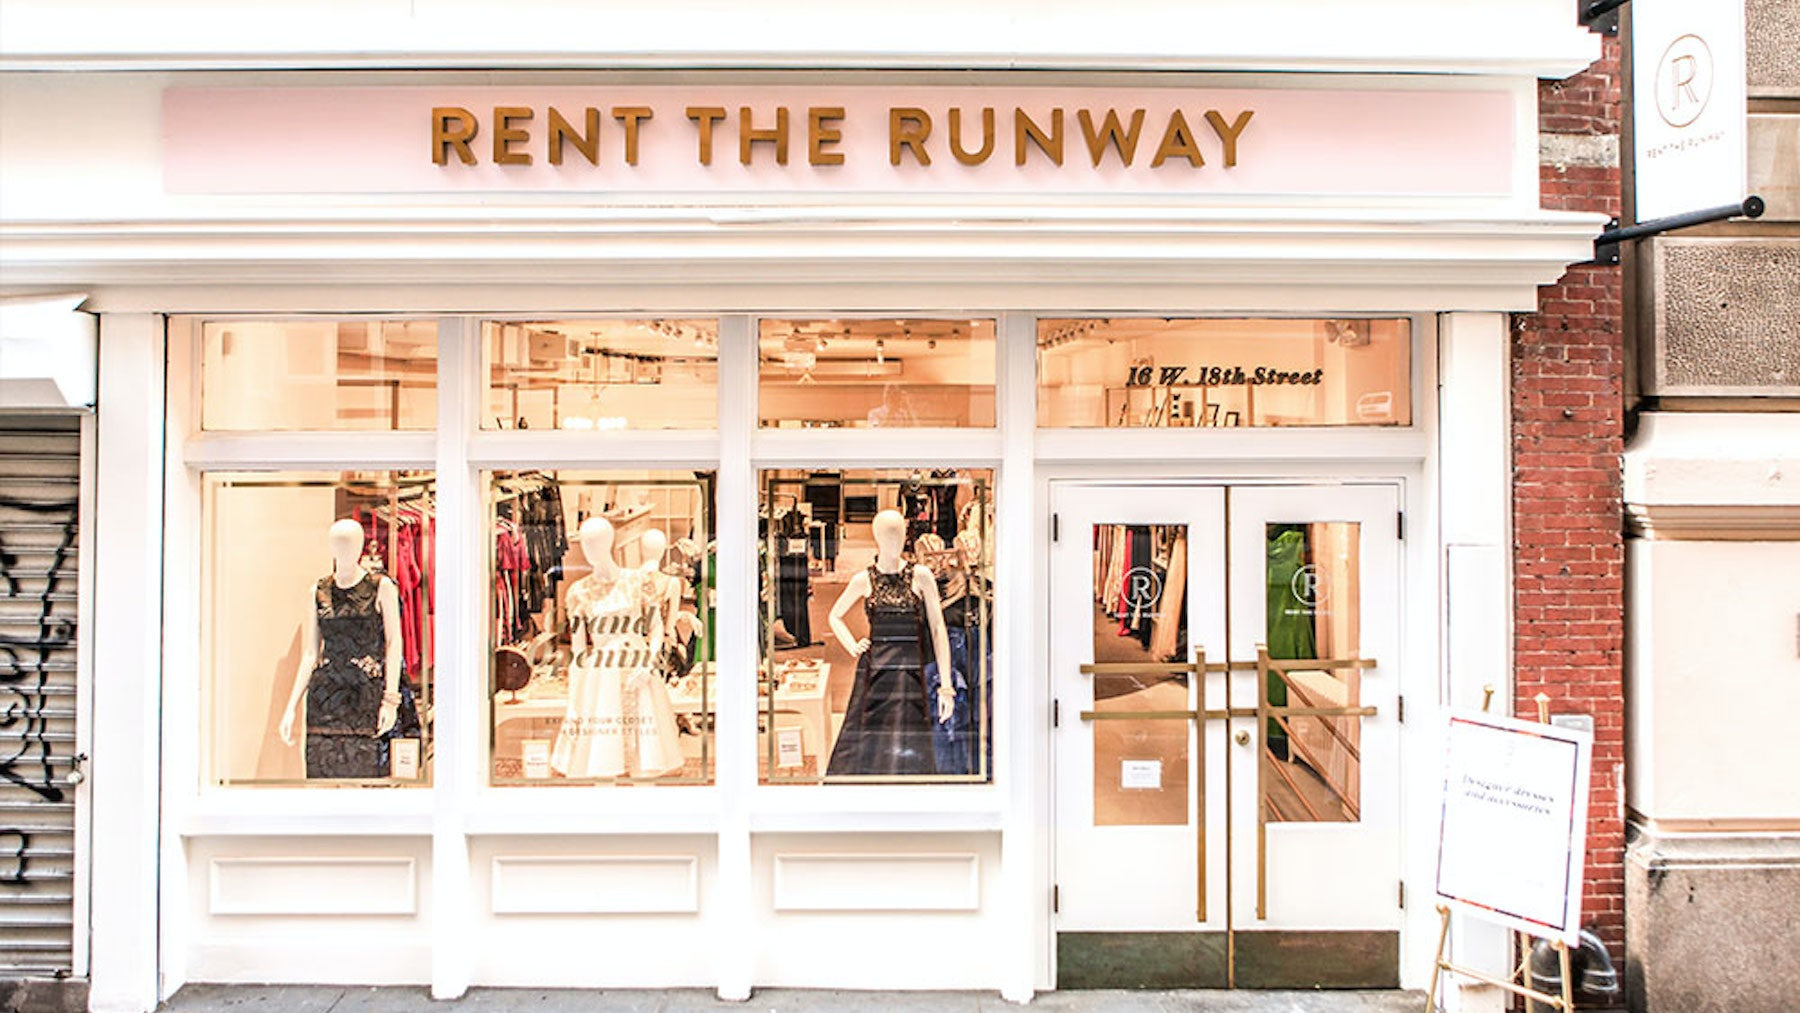 Rent the Runway Update ($89 monthly) gives members four new pieces per month to enjoy. Rent the Runway Unlimited ($ monthly) unlocks an endlessly rotating wardrobe.